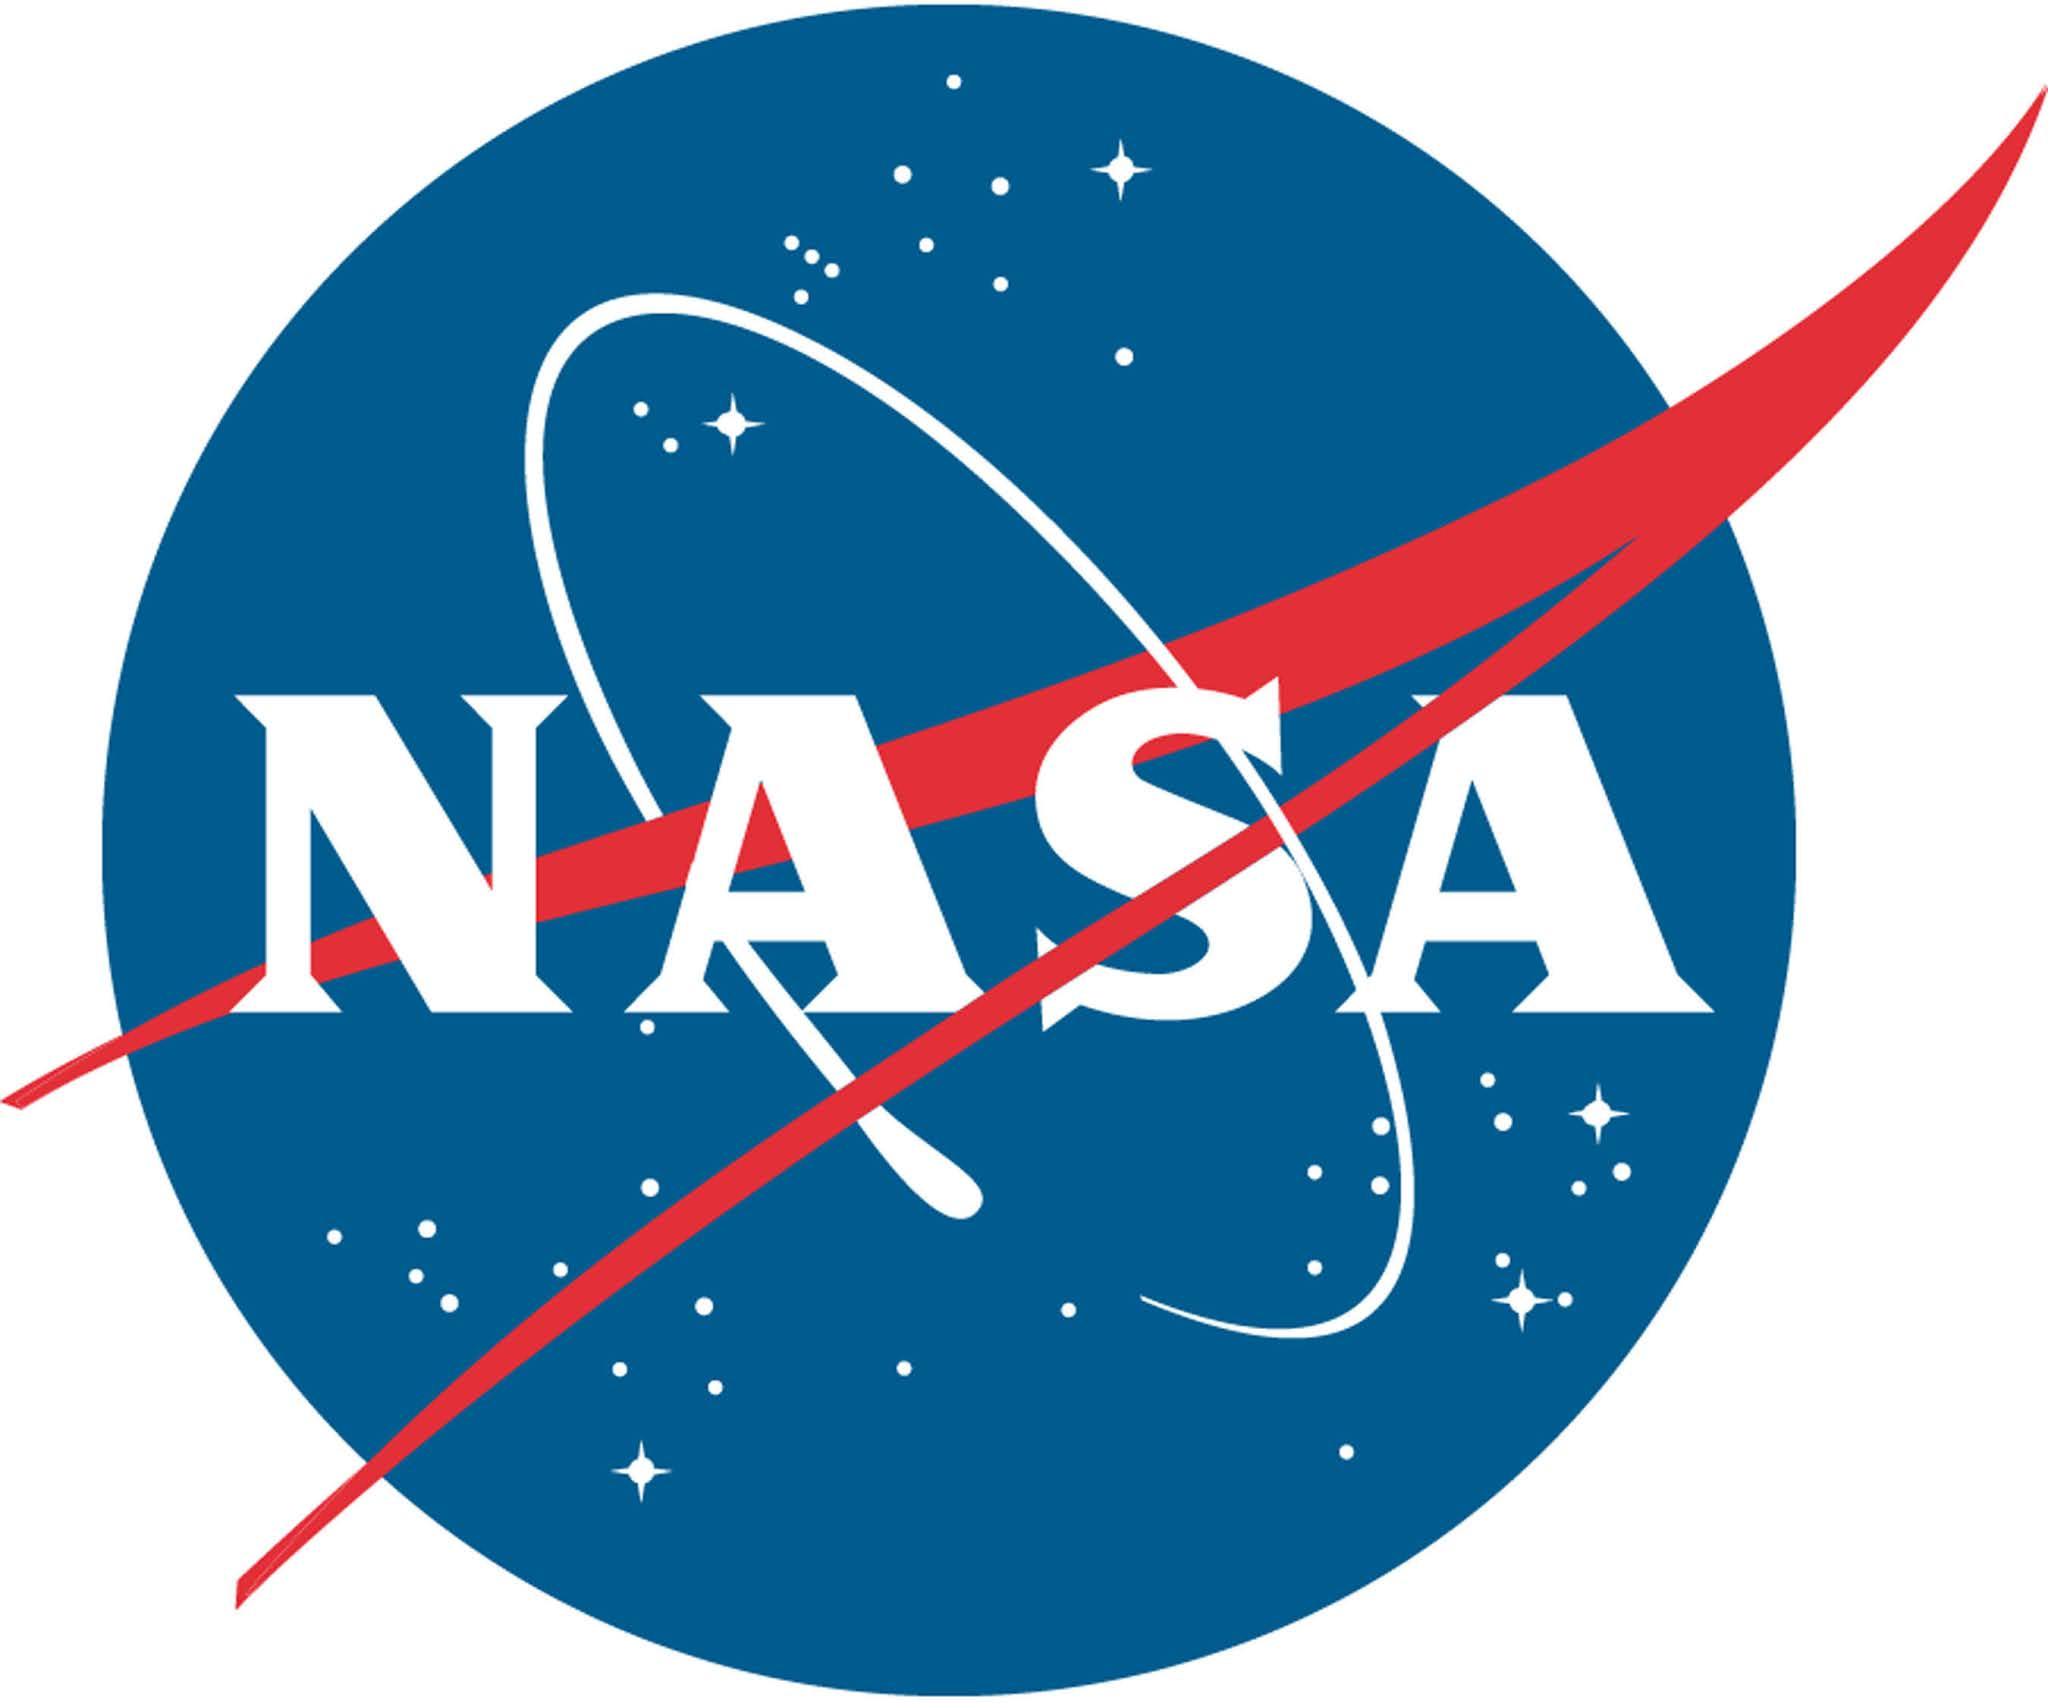 NASA to Air Briefing, Spacewalks to Install New Station Solar Arrays